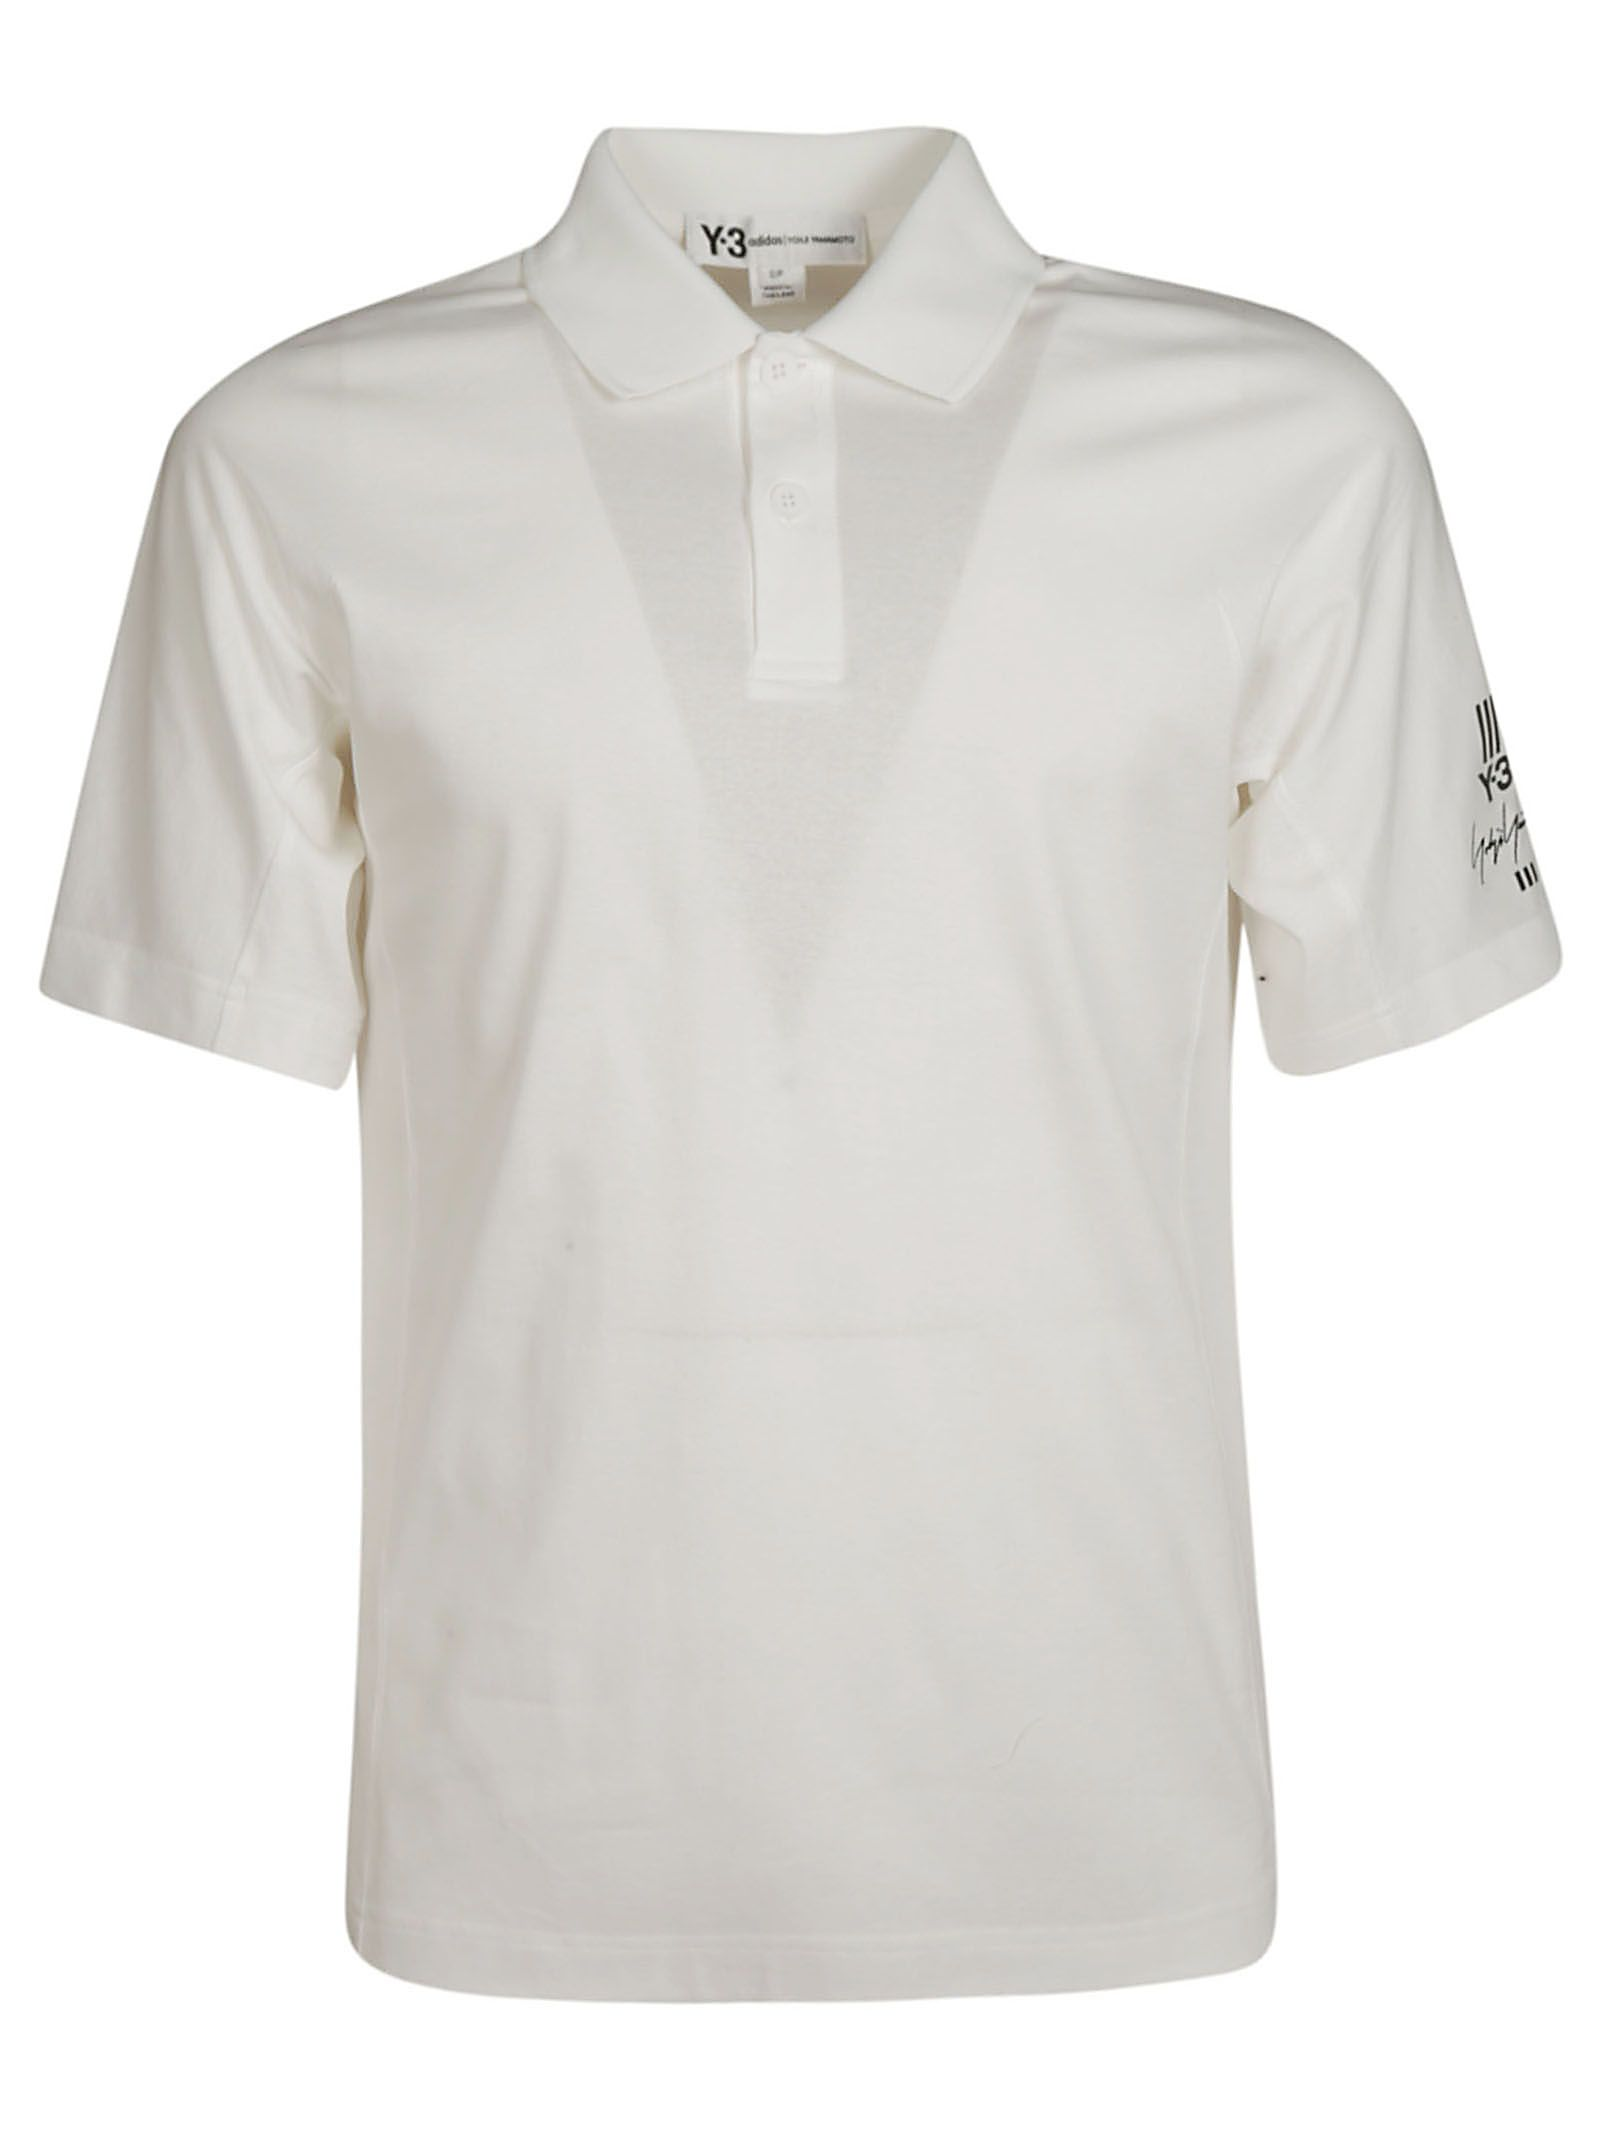 c0e6077d1 Y3 Classic Polo Shirt – EDGE Engineering and Consulting Limited